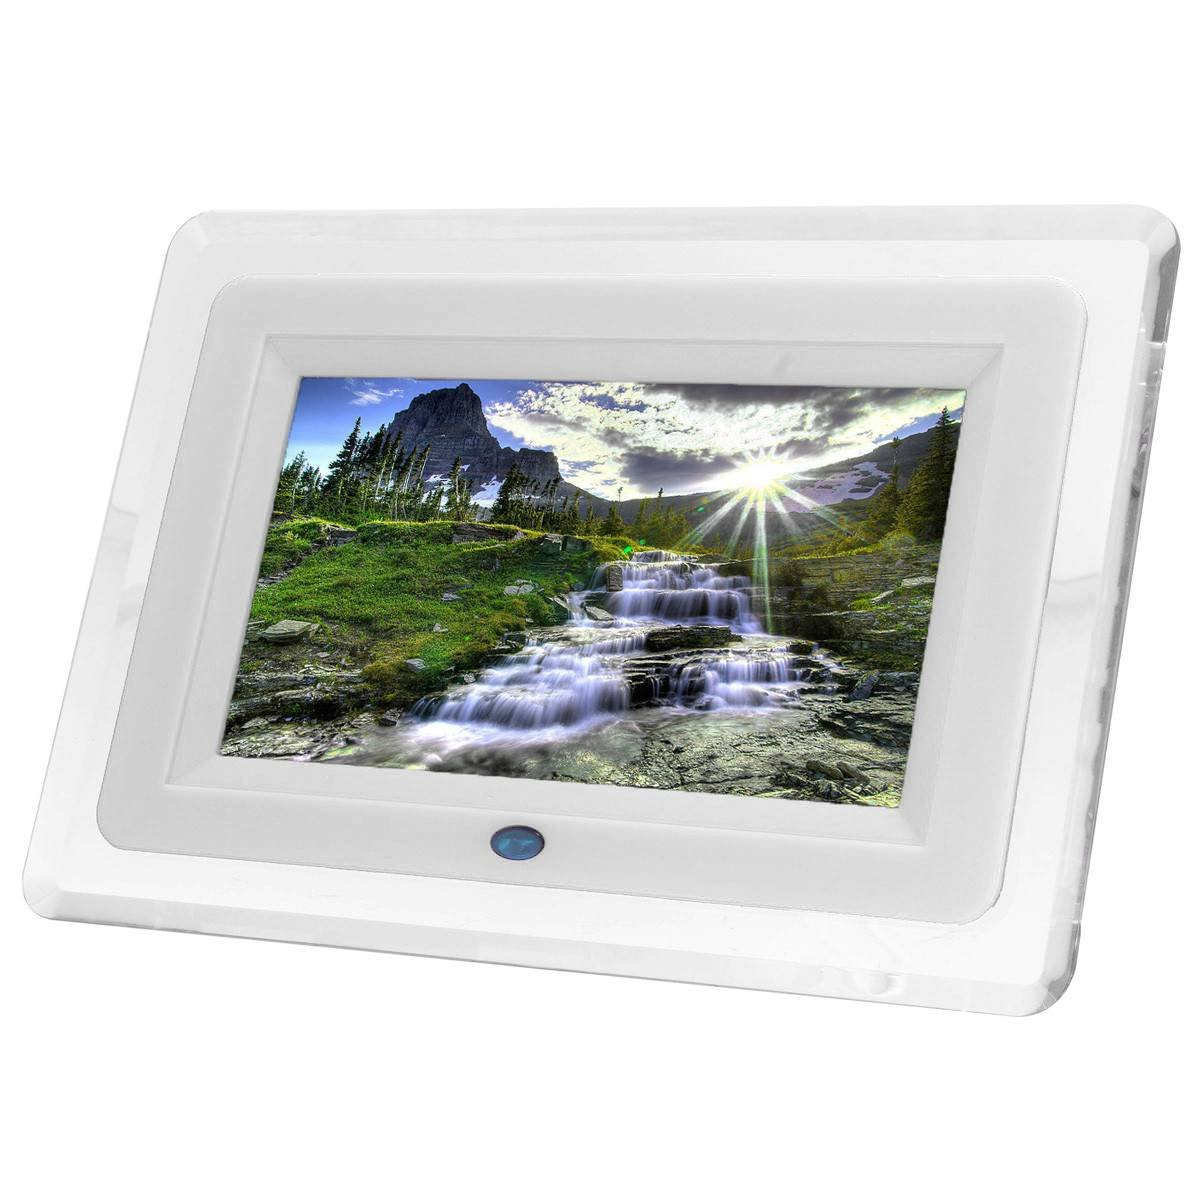 INSMA 7 Inch TFT-LCD Remote Control Digital Photo Frame MP3 Player Alarm With LED Light 7 Color White